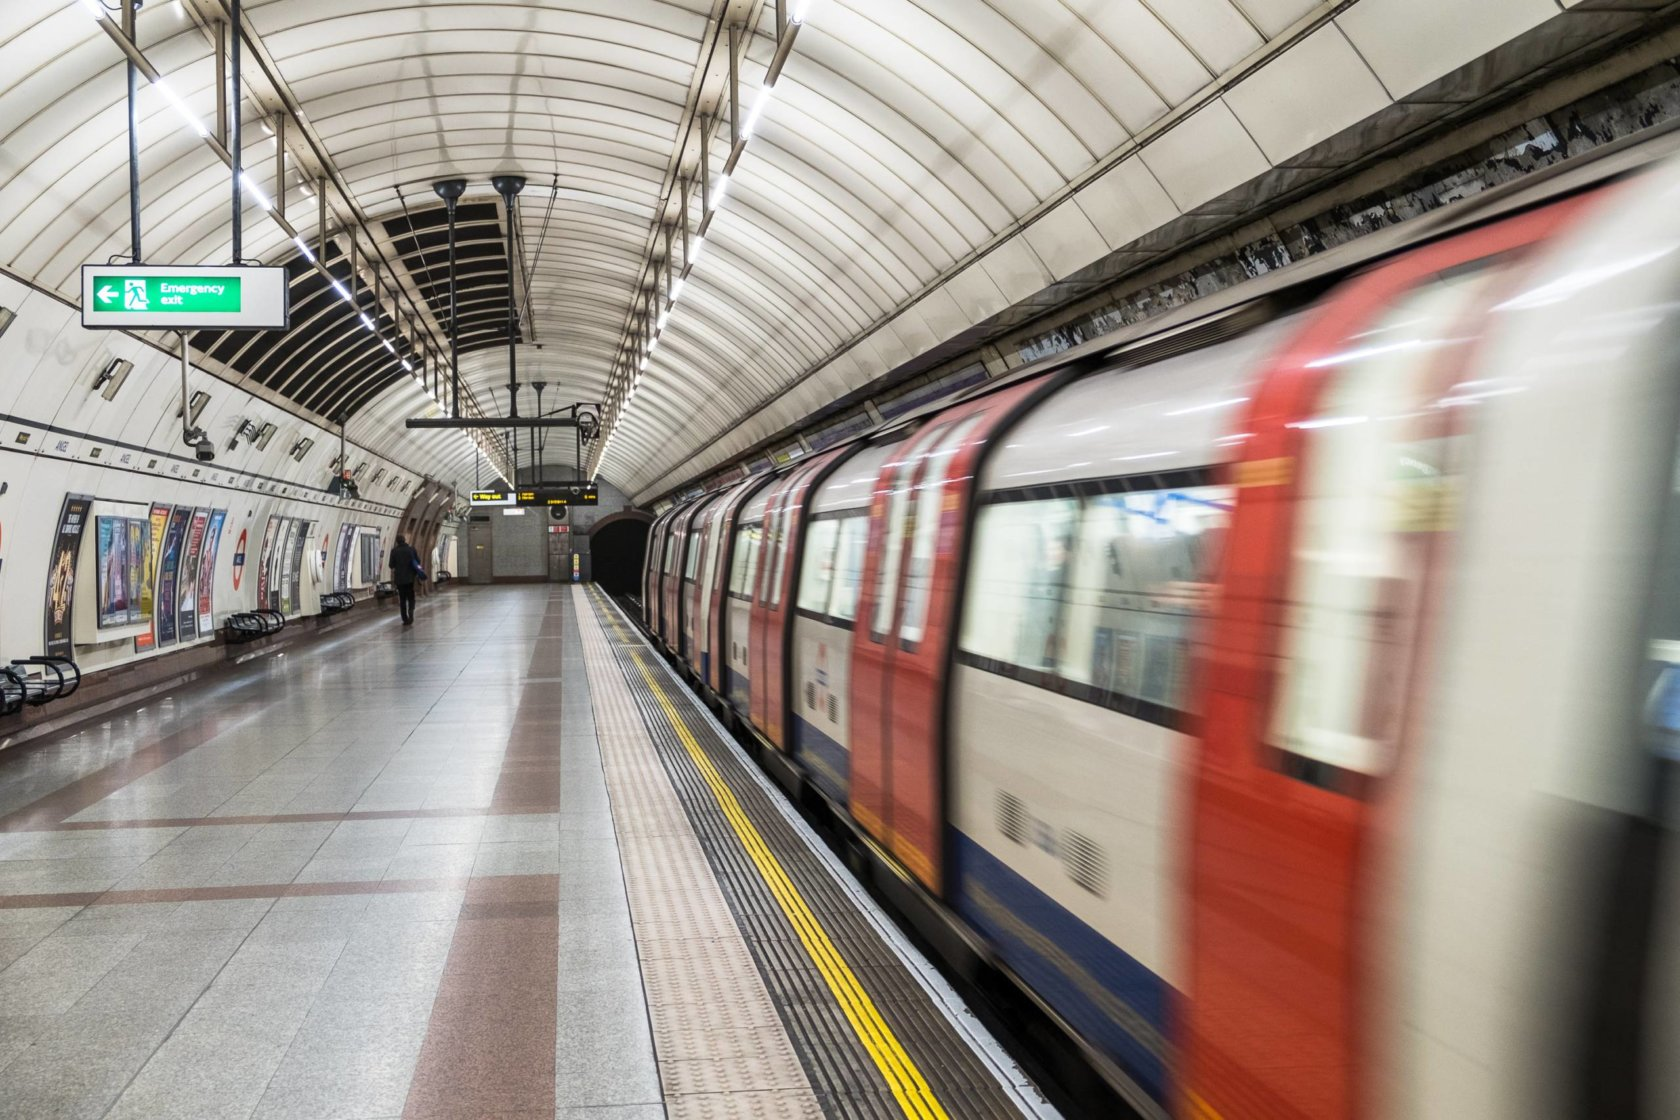 A motion photo of London's tube departing a station